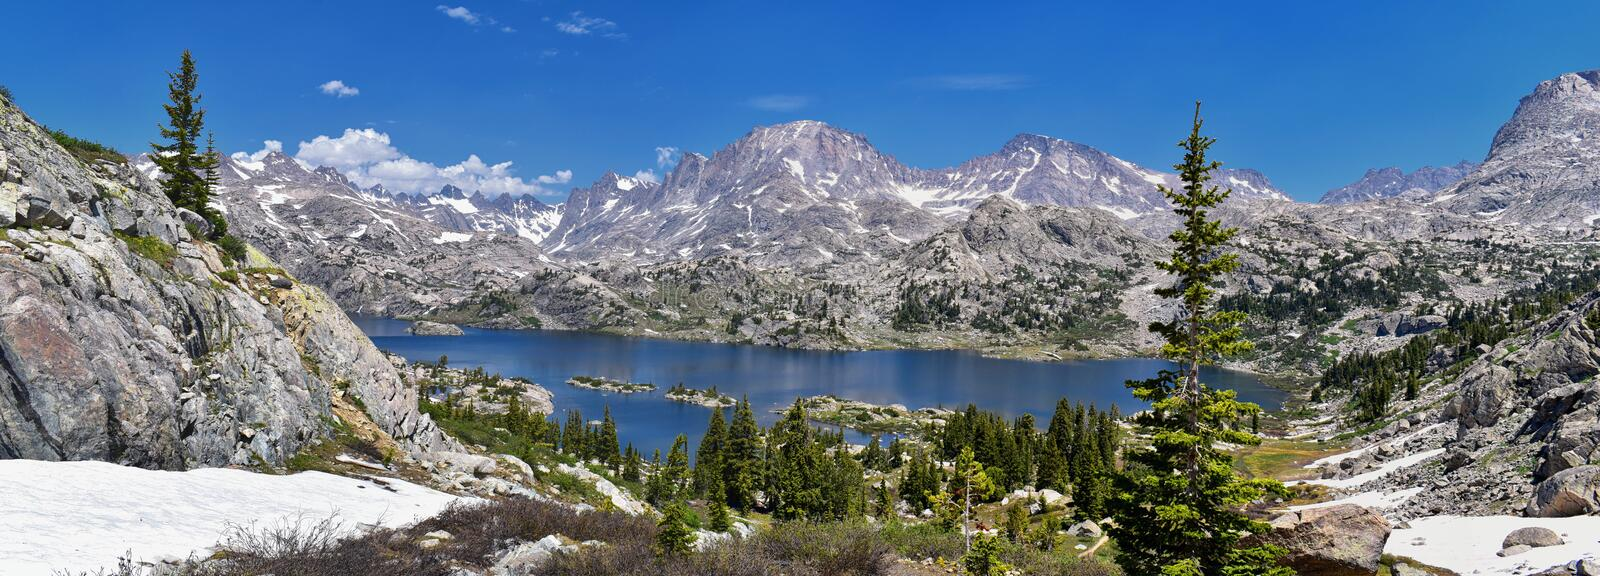 Island Lake in the Wind River Range, Rocky Mountains, Wyoming, views from backpacking hiking trail to Titcomb Basin from Elkhart P. Ark Trailhead going past royalty free stock images